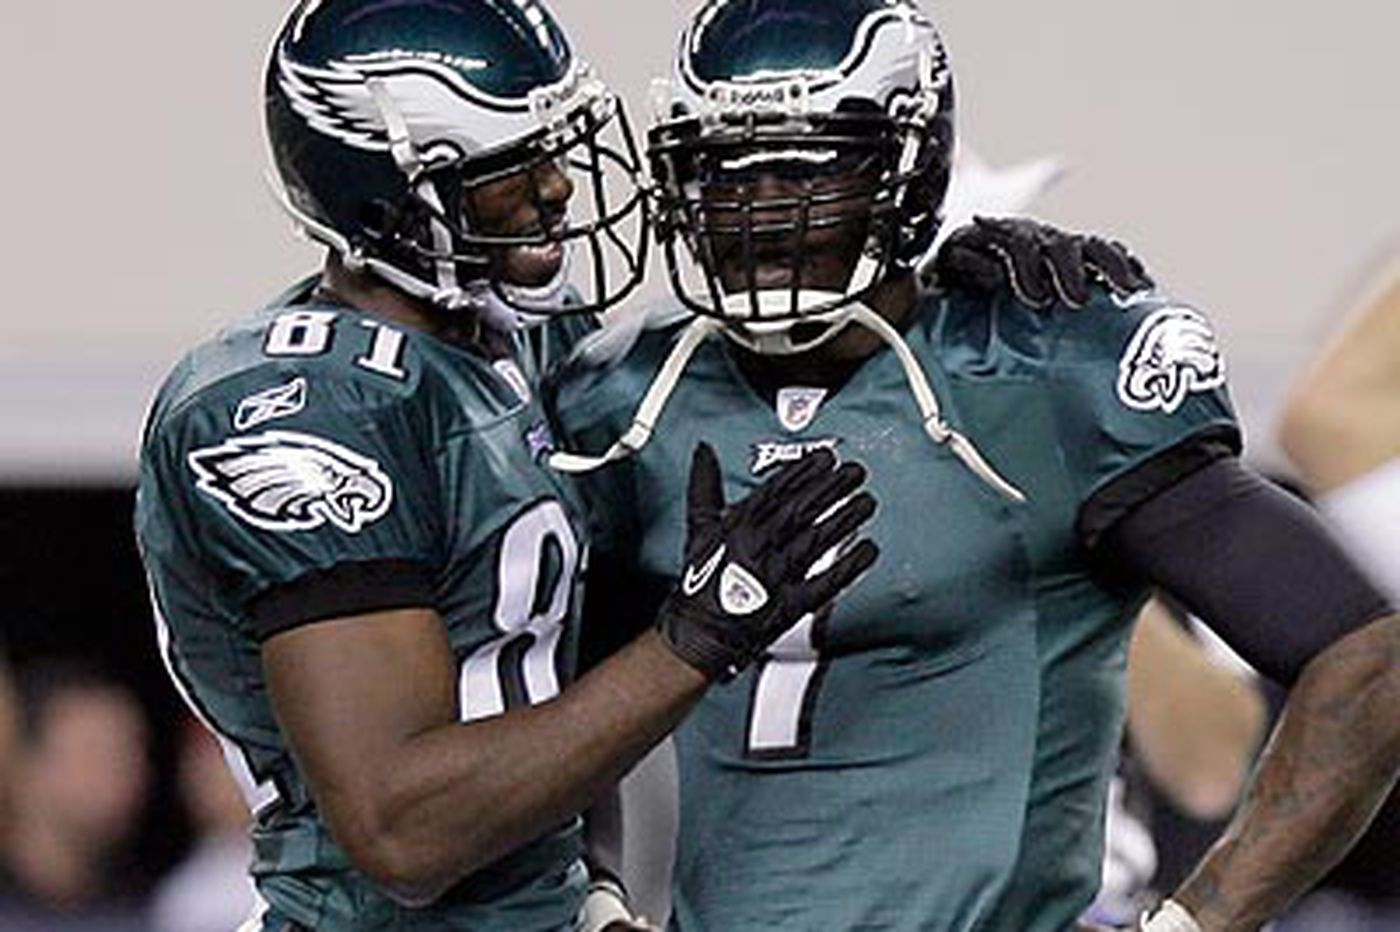 Bob Ford: Eagles took advantage of great opportunity